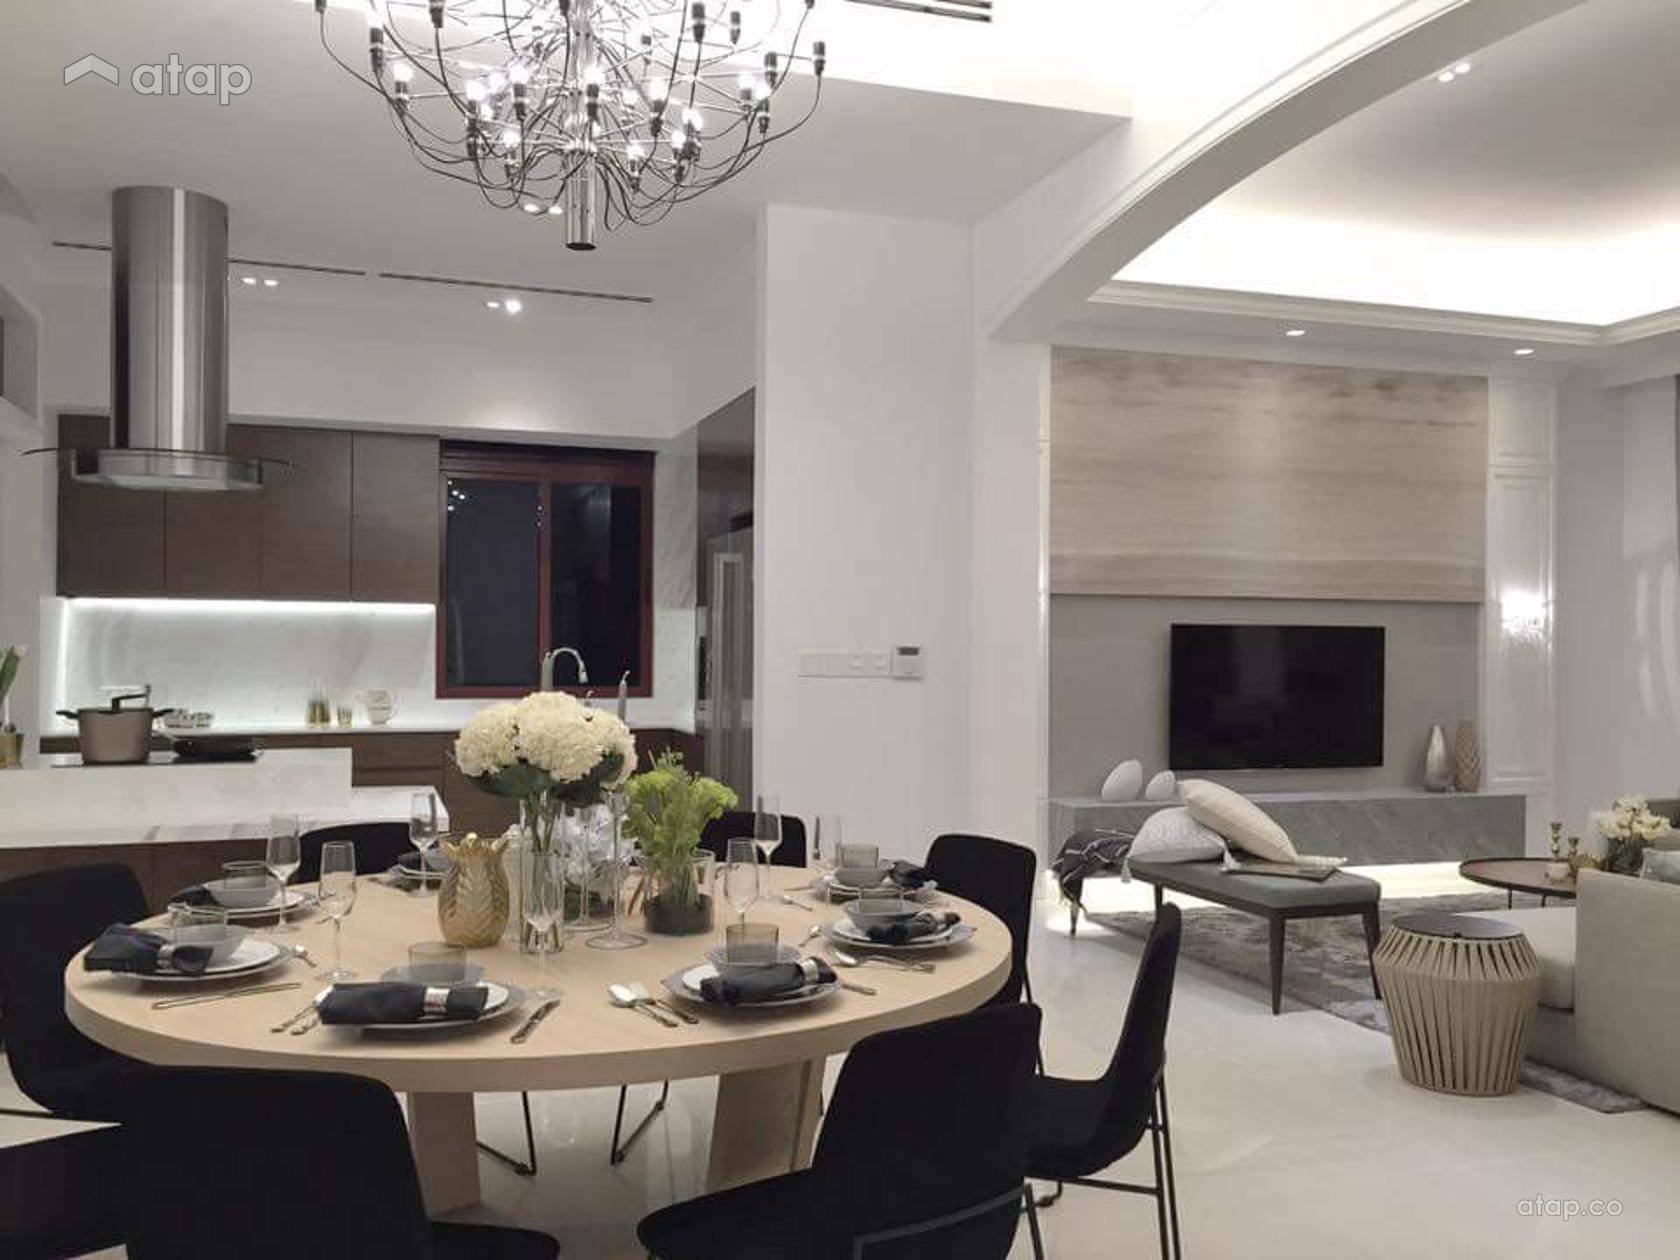 Classic Modern Dining Room Kitchen @ Diamond City Bungalow show unit interior design and fit-out work